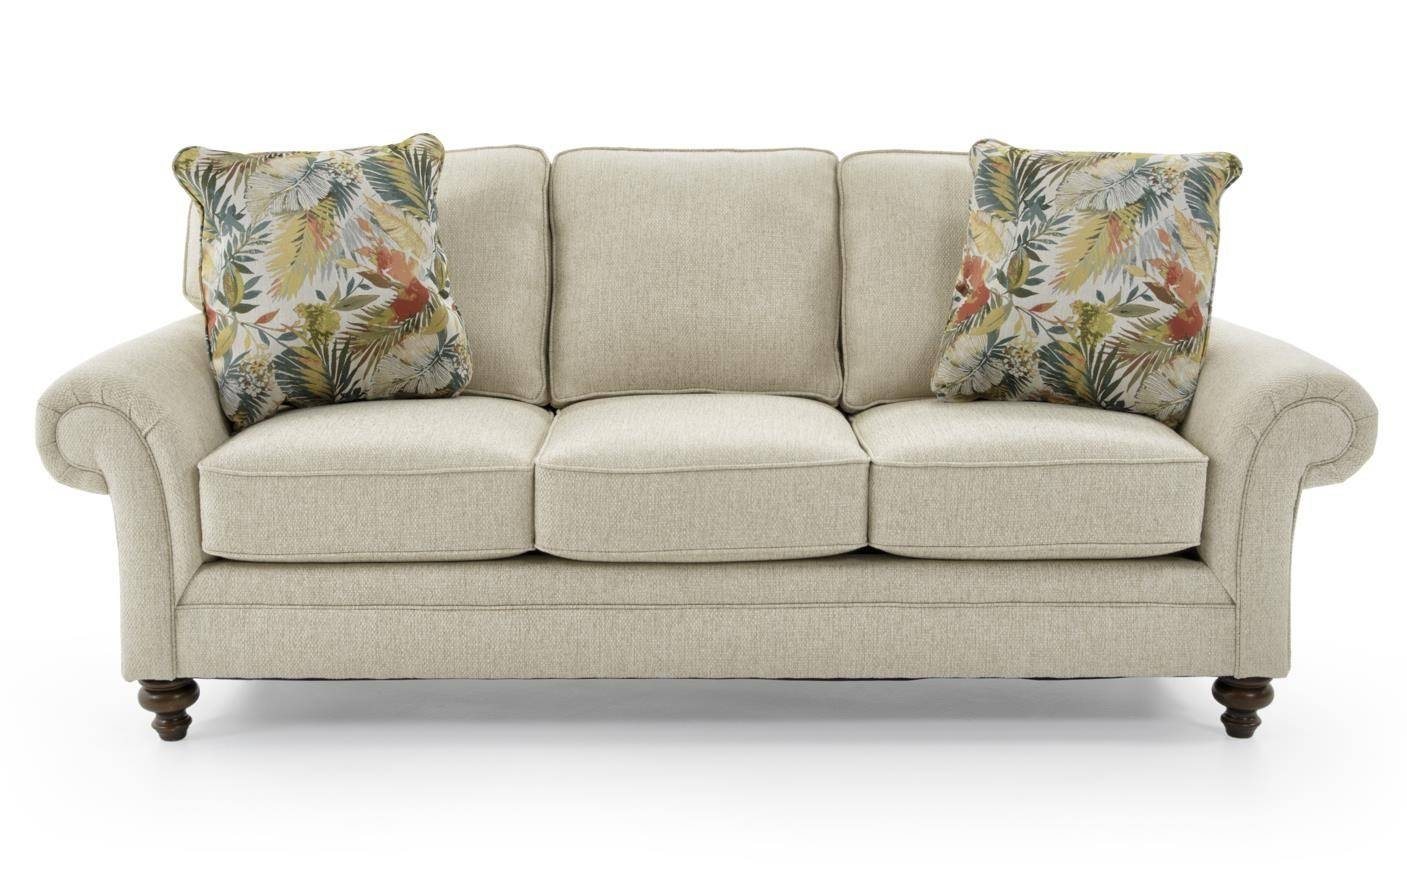 Broyhill Furniture Larissa Upholstered Stationary Sofa With Rolled with regard to Broyhill Larissa Sofas (Image 2 of 15)